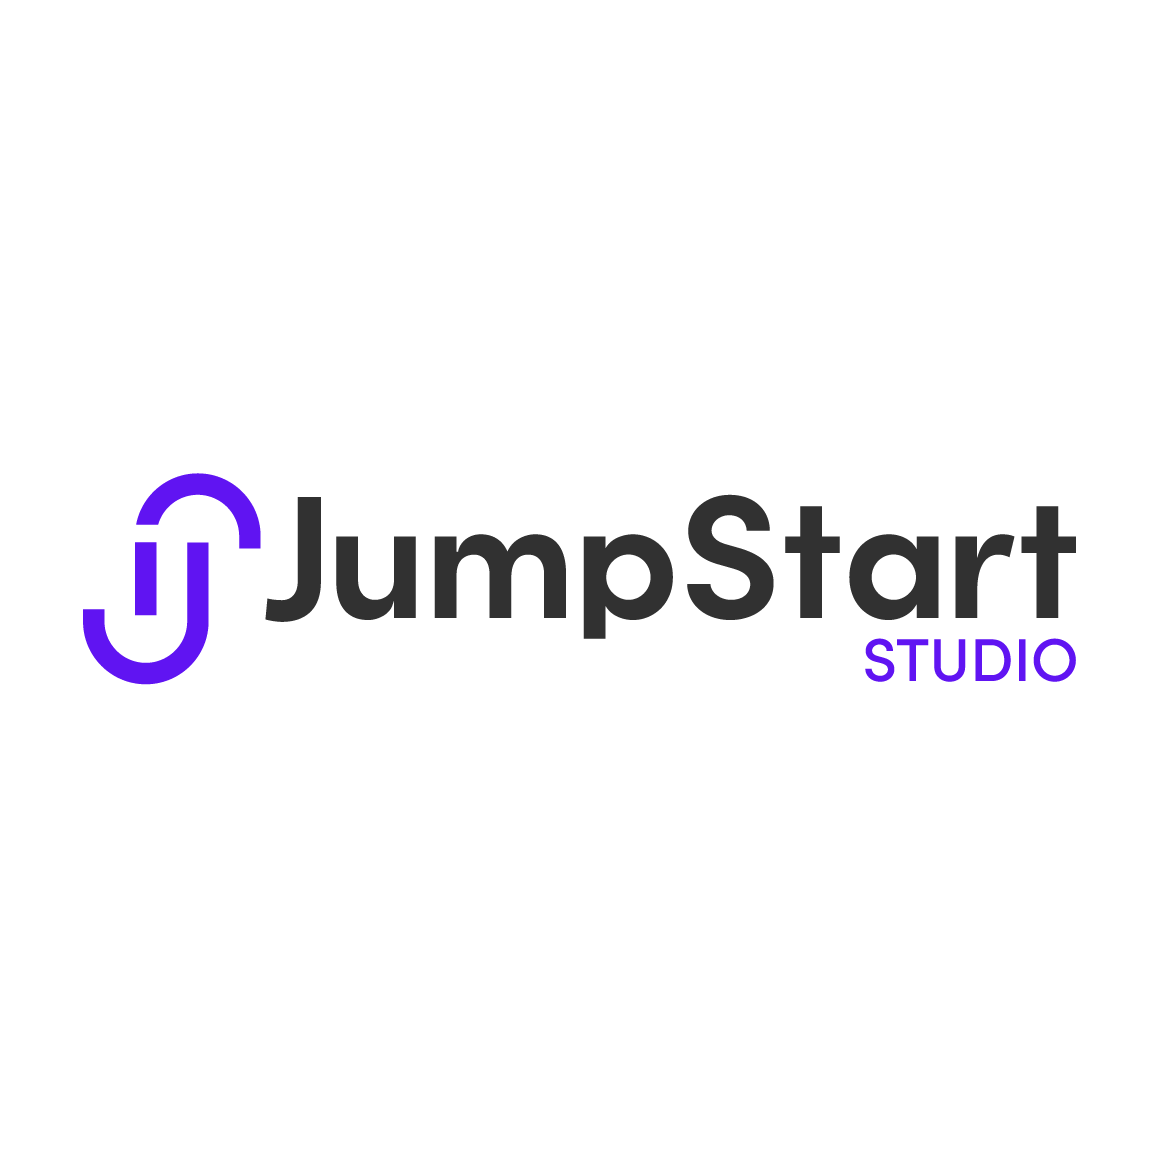 JUMPSTART STUDIO